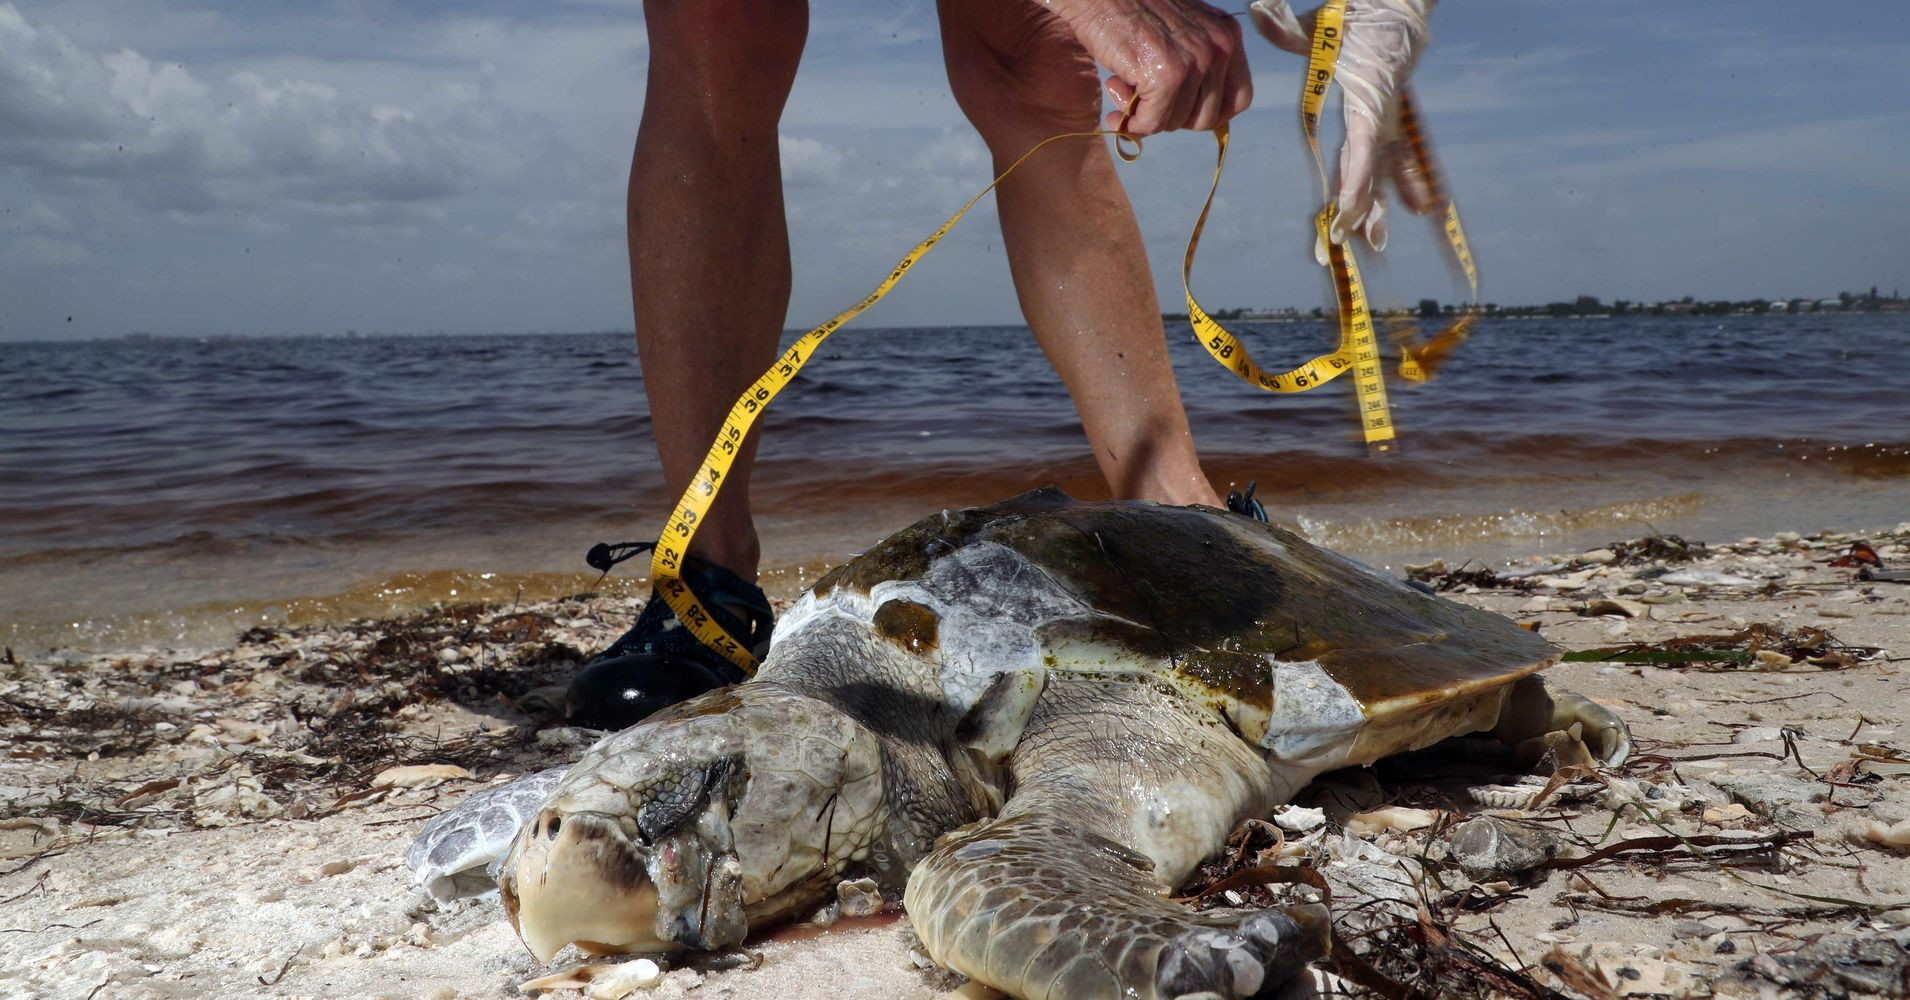 Florida S Toxic Red Tide Is Spreading North Up The Gulf Coast Huffpost